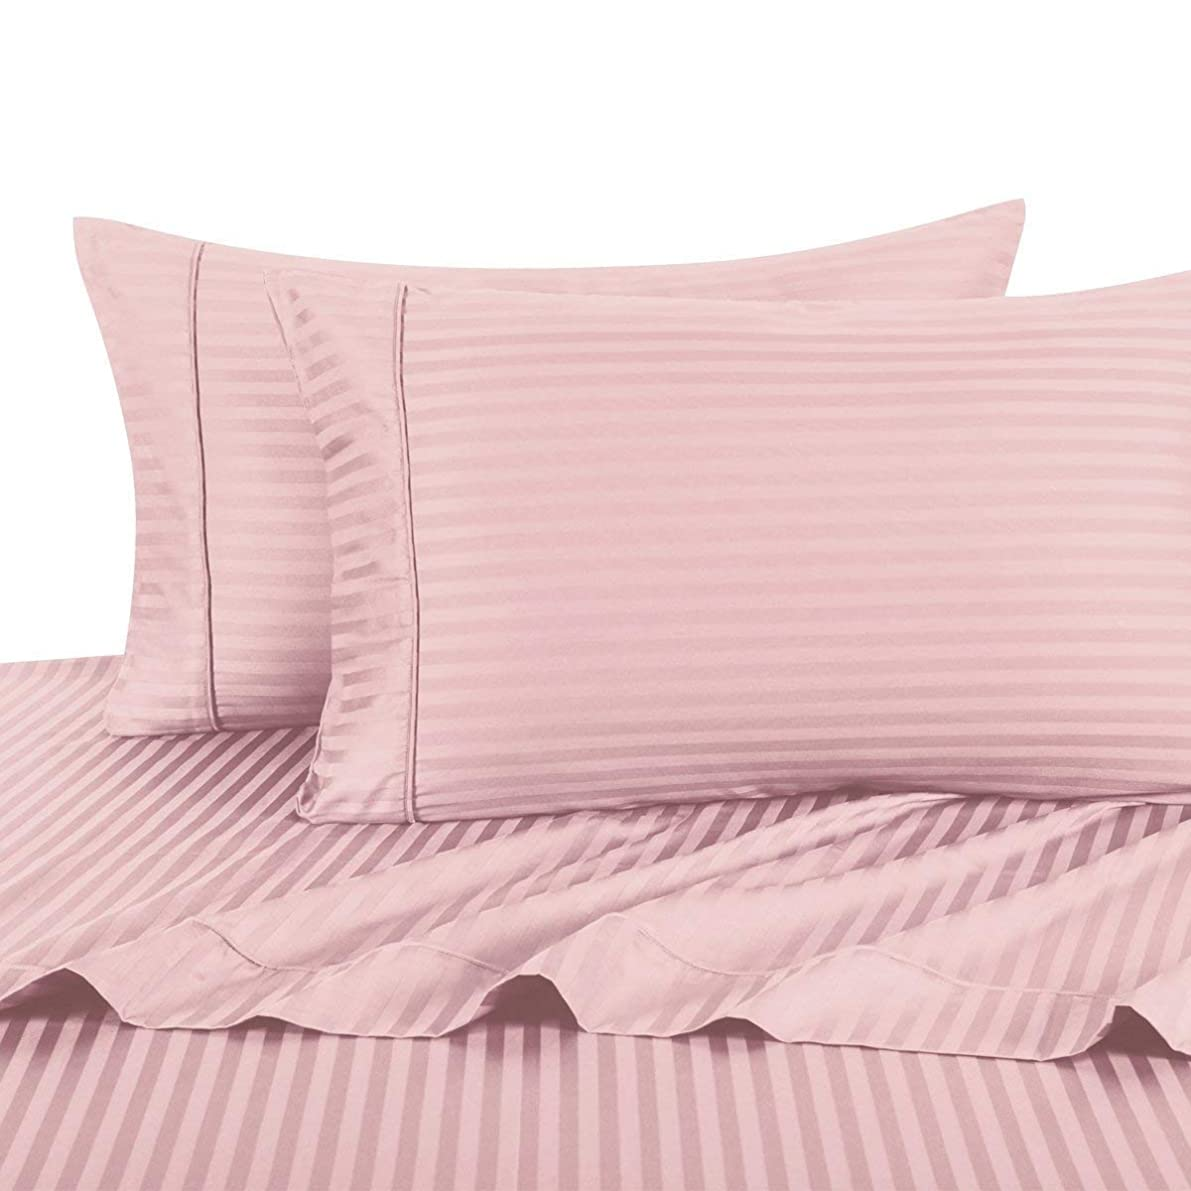 Royal Hotel Stripe Pink Standard Size Pillowcases, 2PC Pillow Cases, 100% Cotton, 300 Thread Count, Sateen Striped